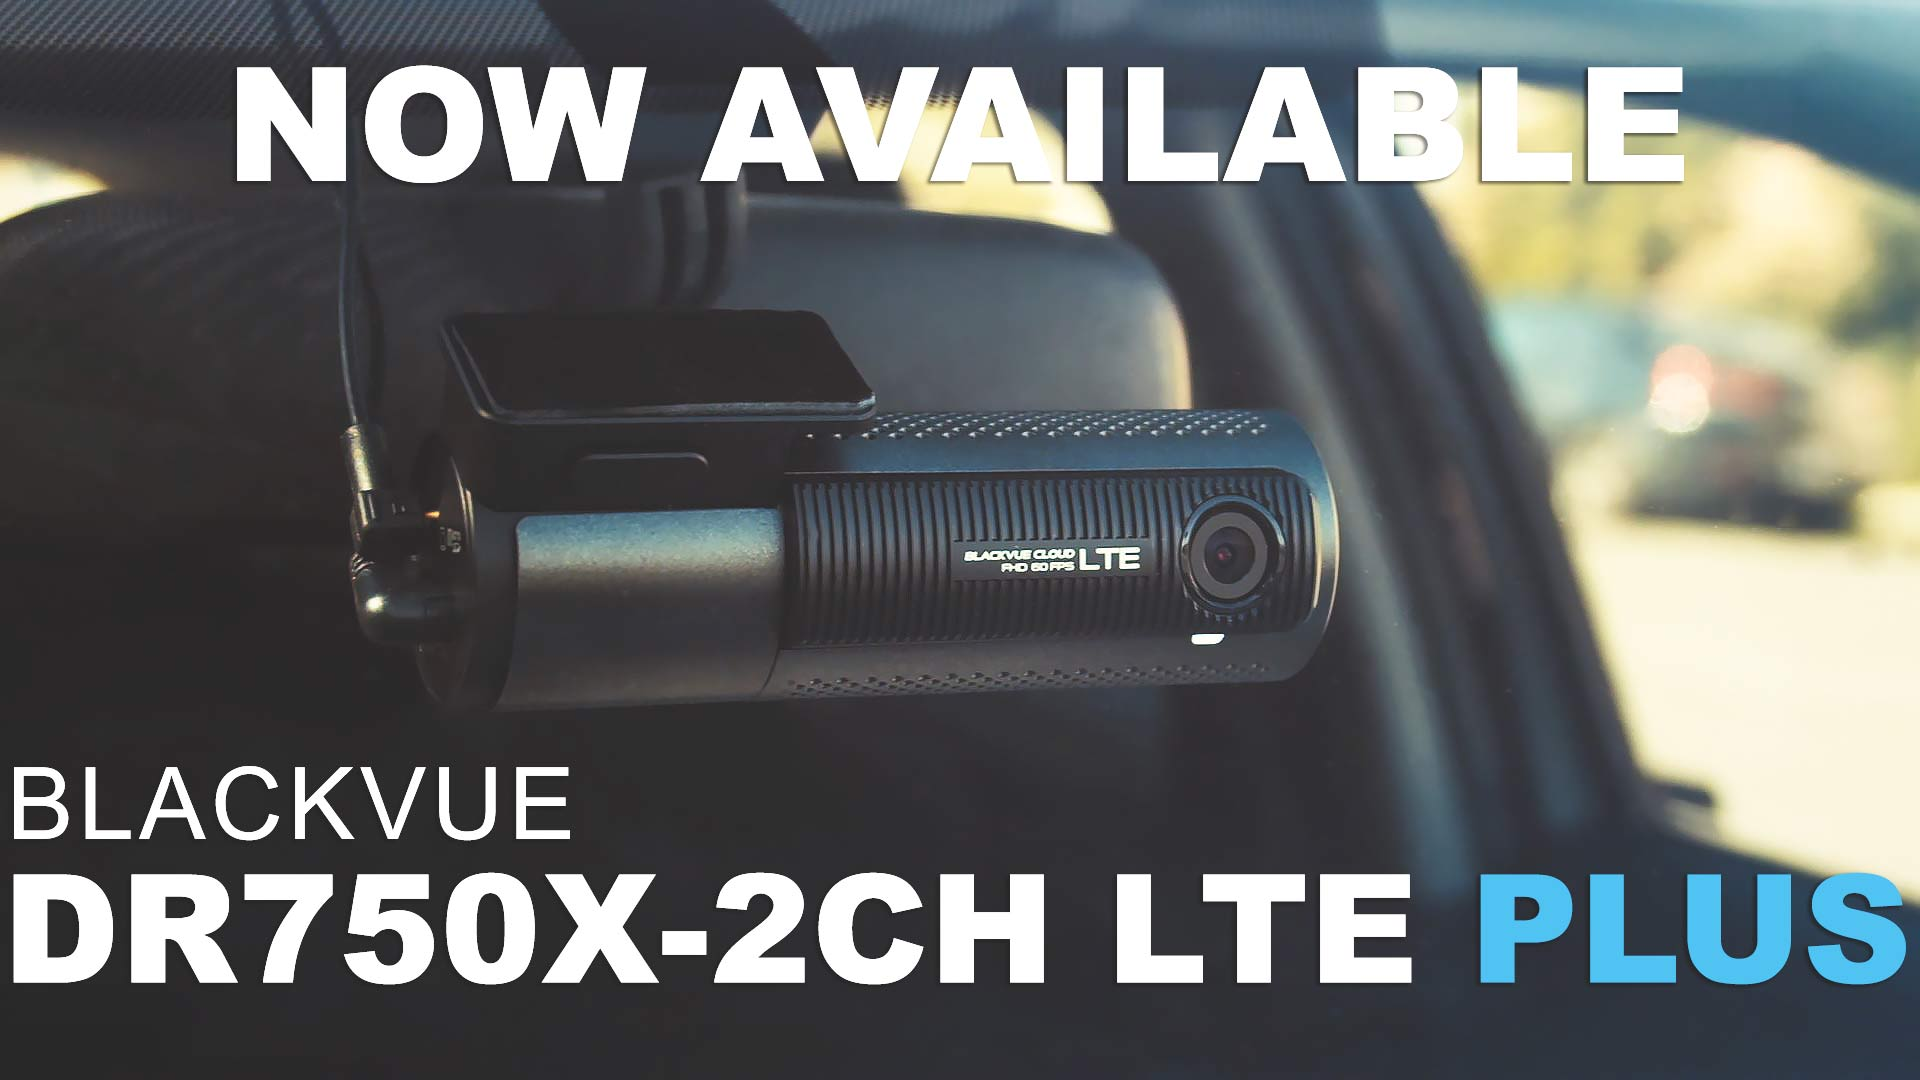 BlackVue DR750X-2CH LTE Plus Dash Cam with Built-in 4G Capability Available Now